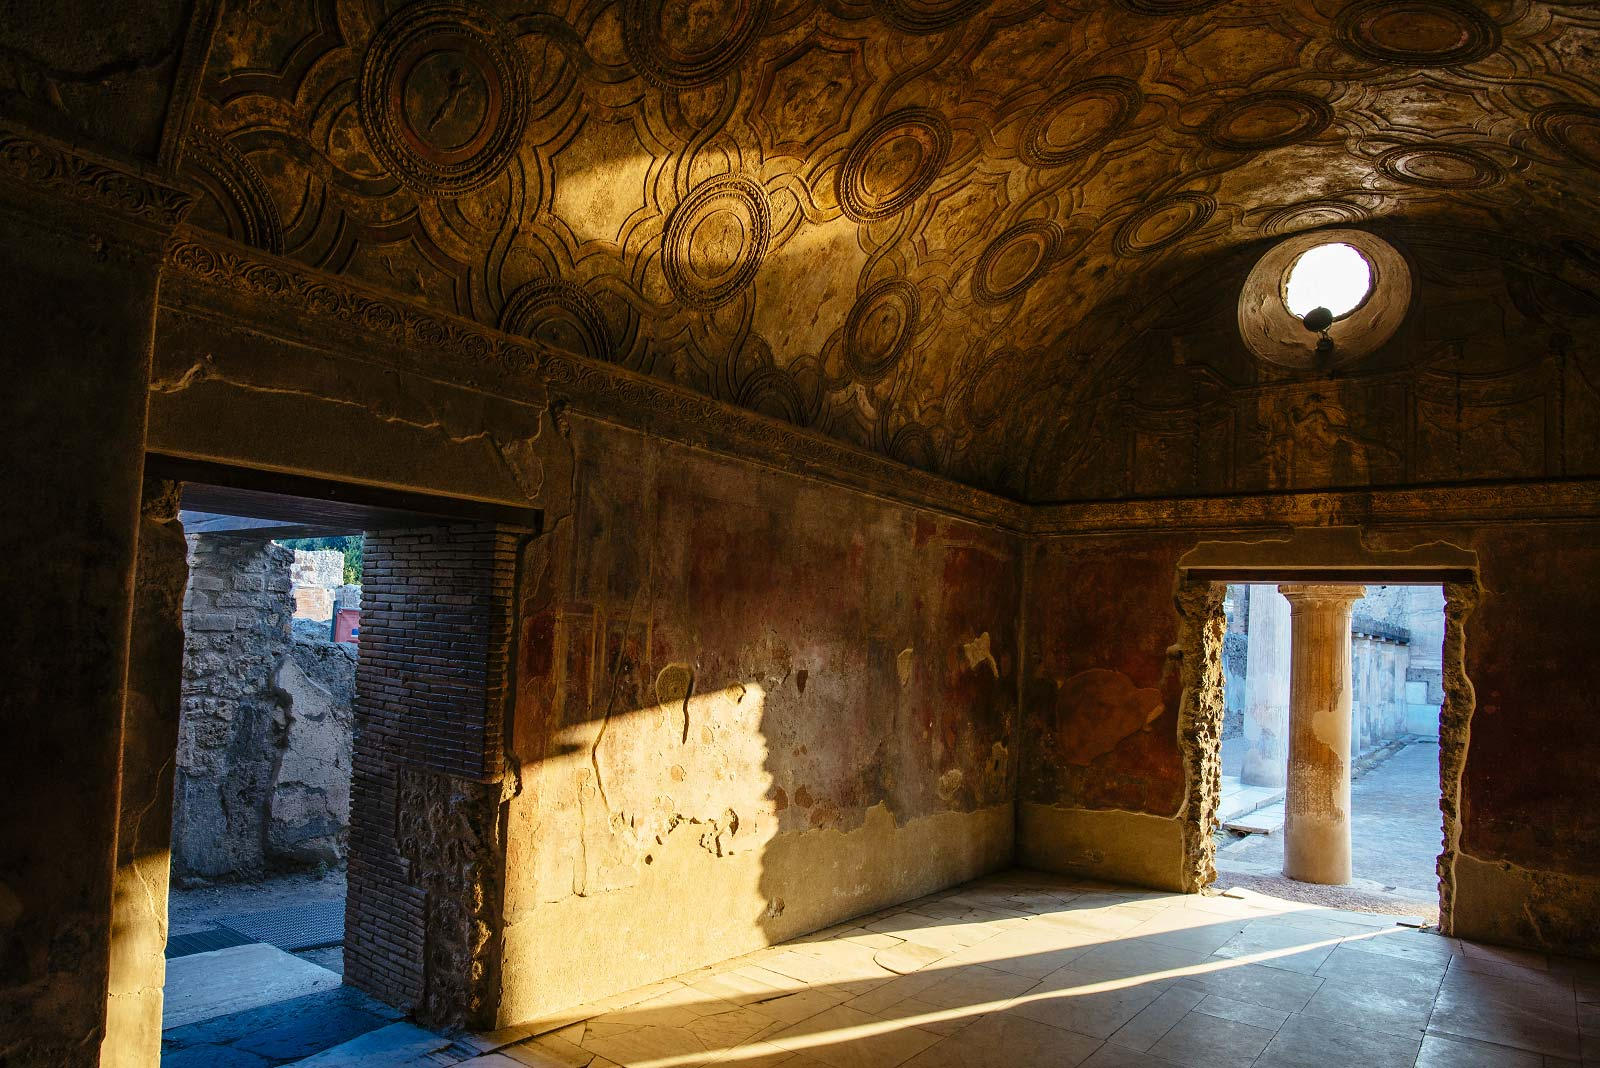 Skip the line - Guided tour of Pompeii